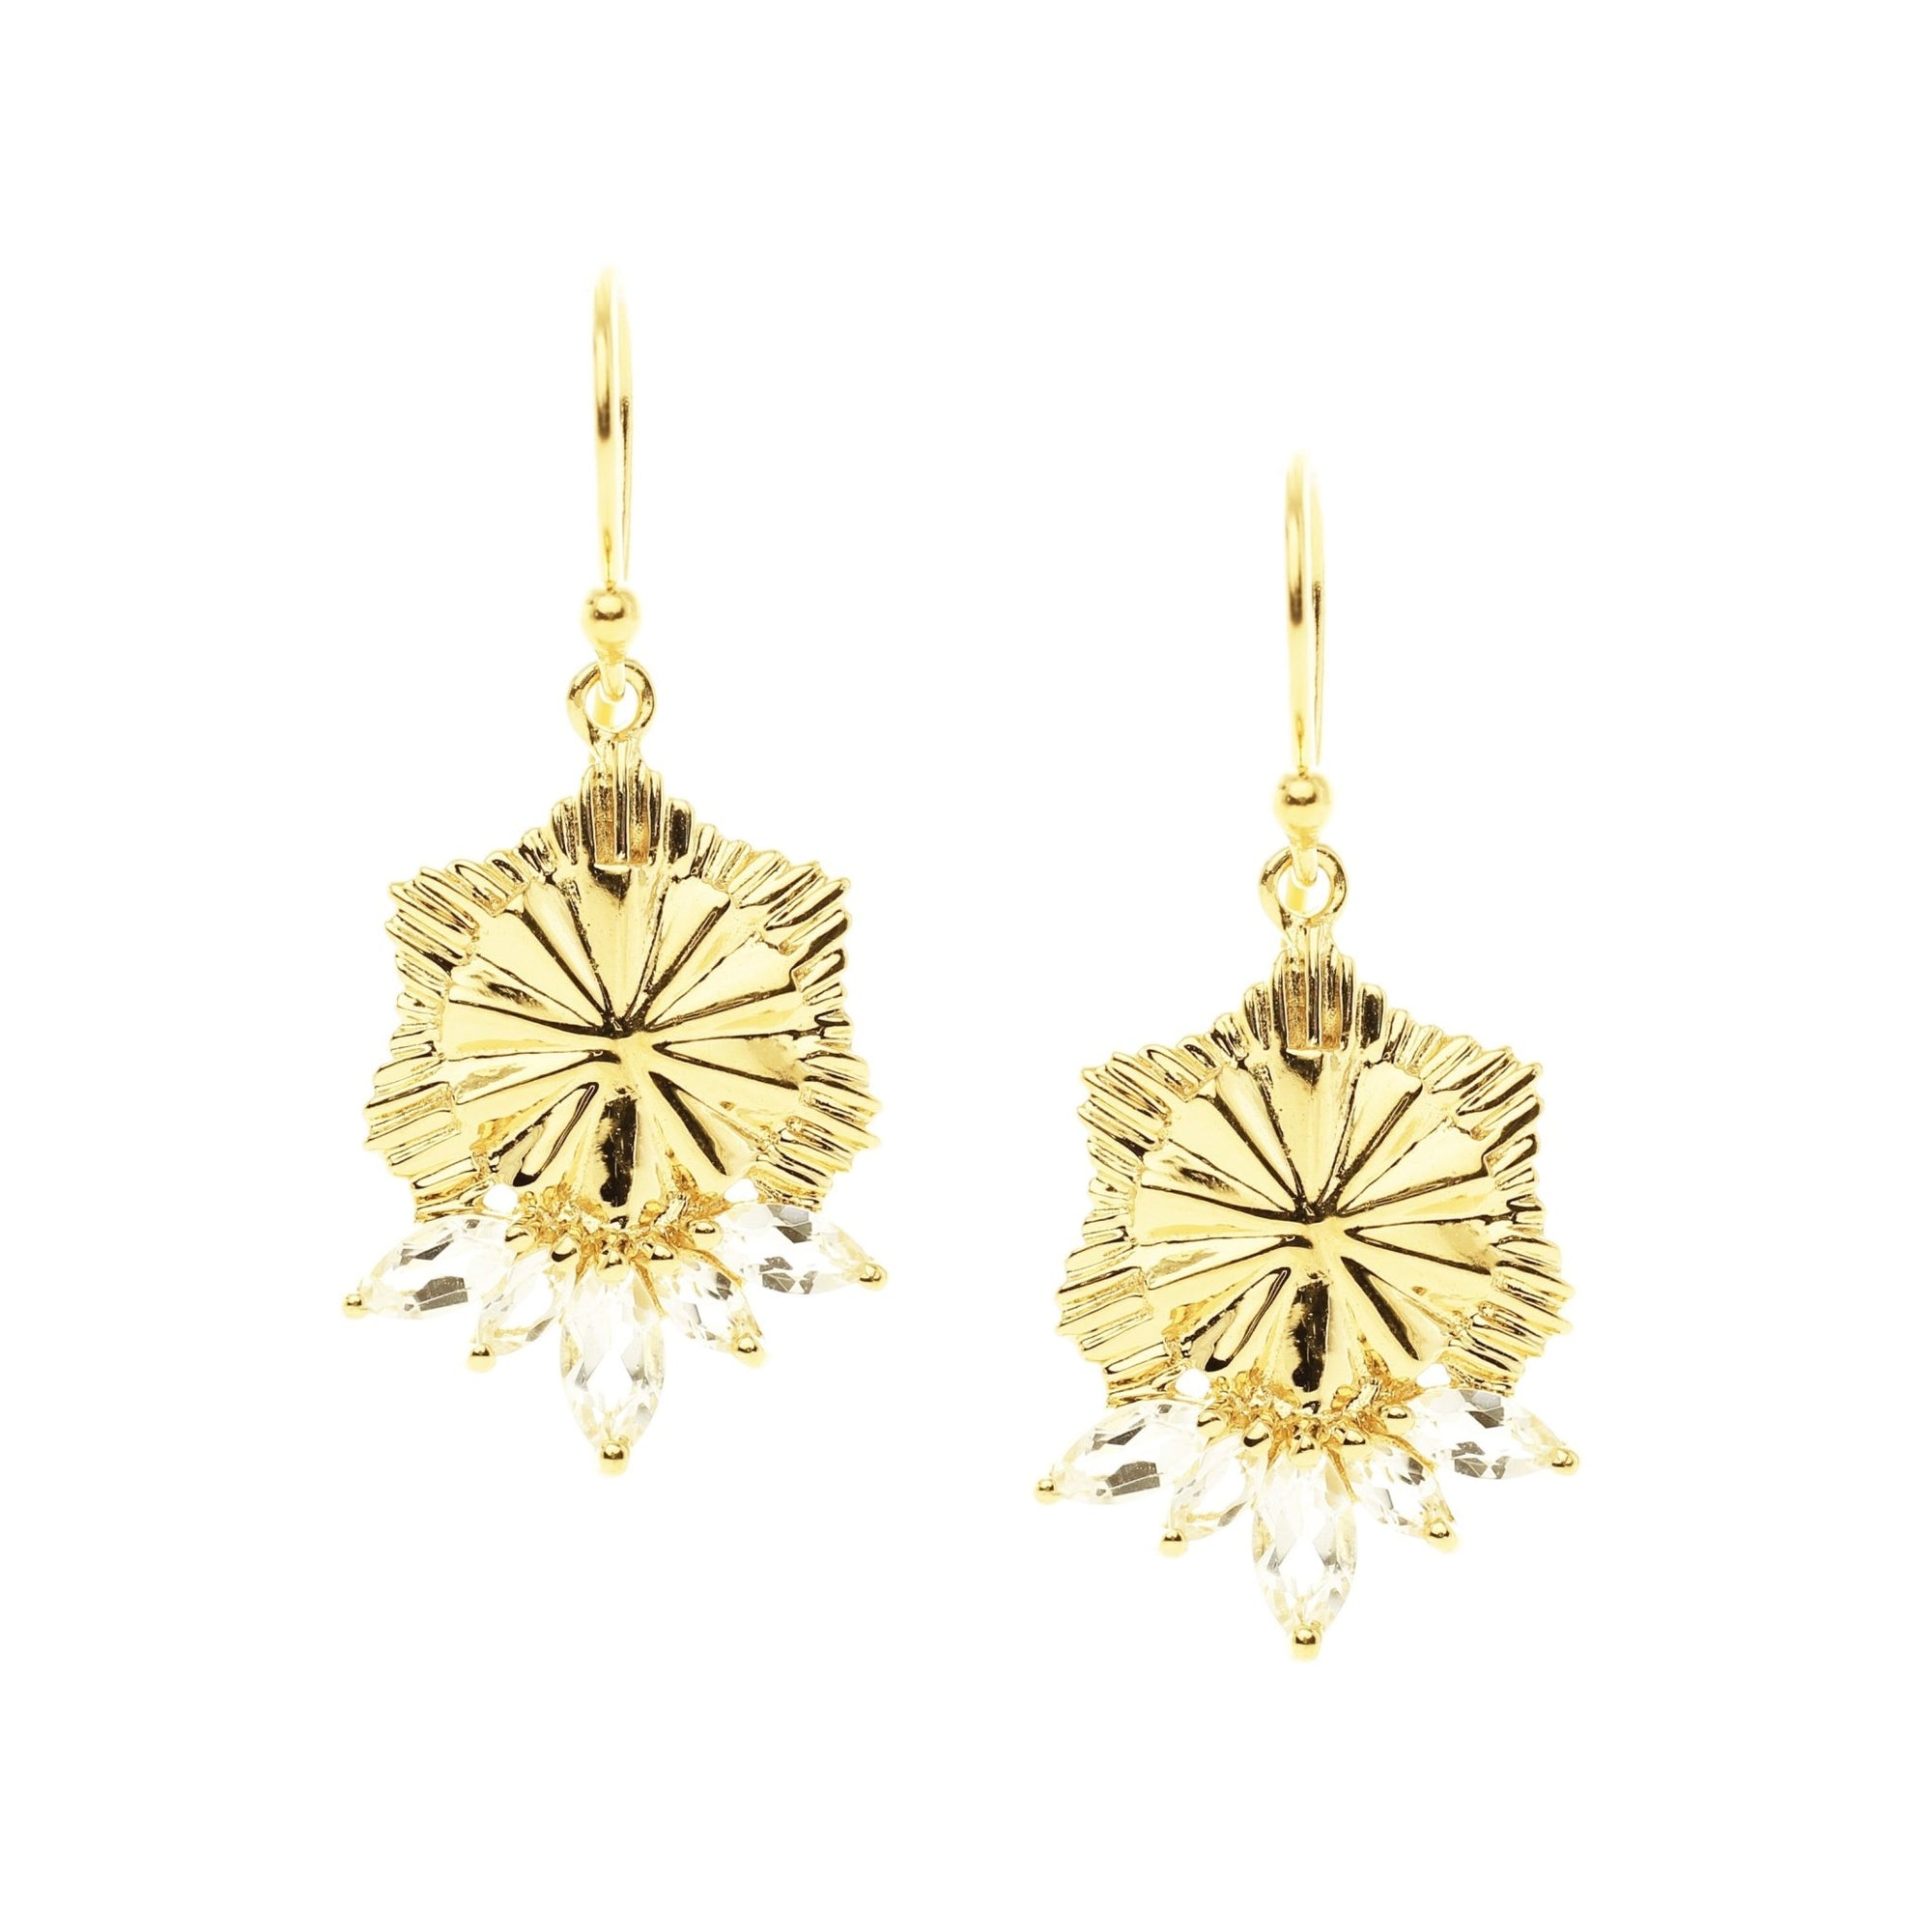 BELIEVE SOLEIL DROP EARRINGS - WHITE TOPAZ & GOLD - SO PRETTY CARA COTTER